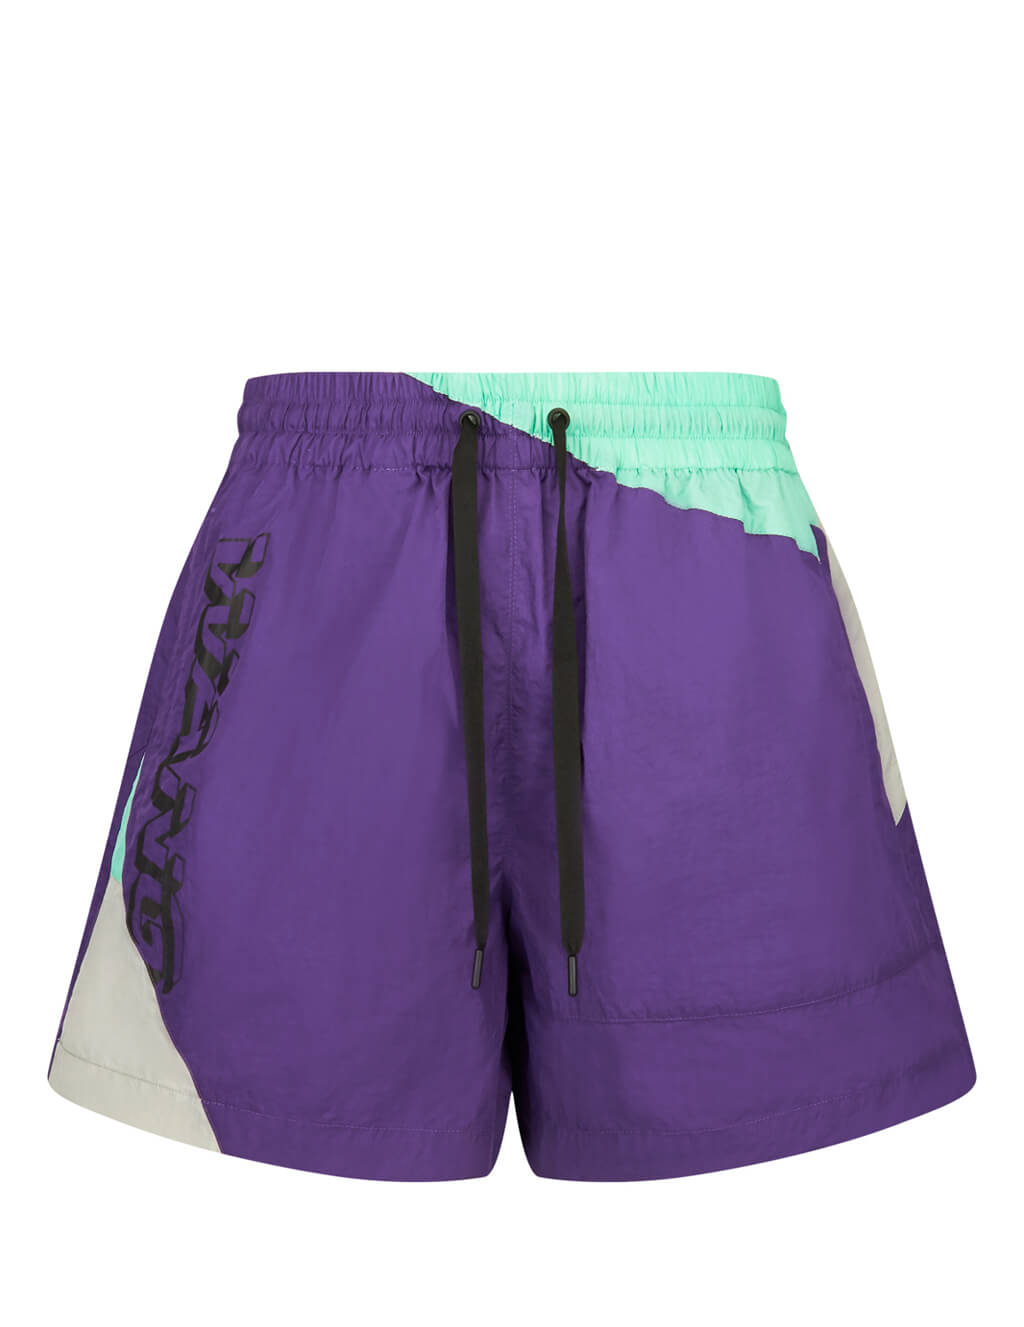 T by Alexander Wang Purple Heavy Washed Shorts 4Wc2194017503